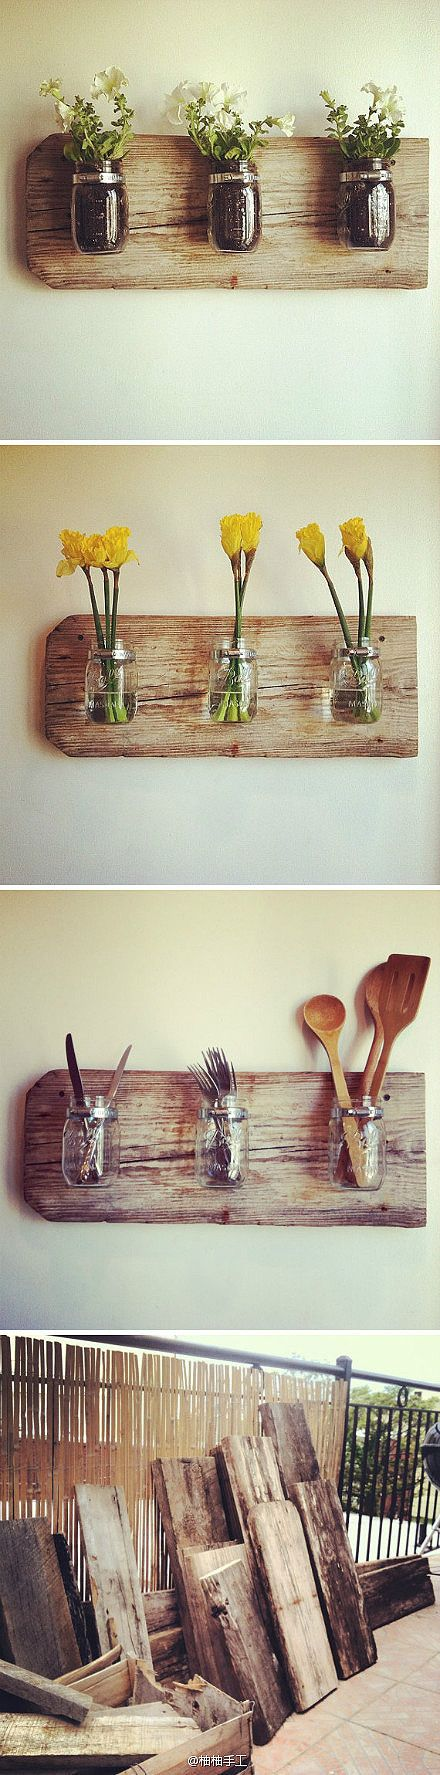 wood & mason jars. endless possibilities.